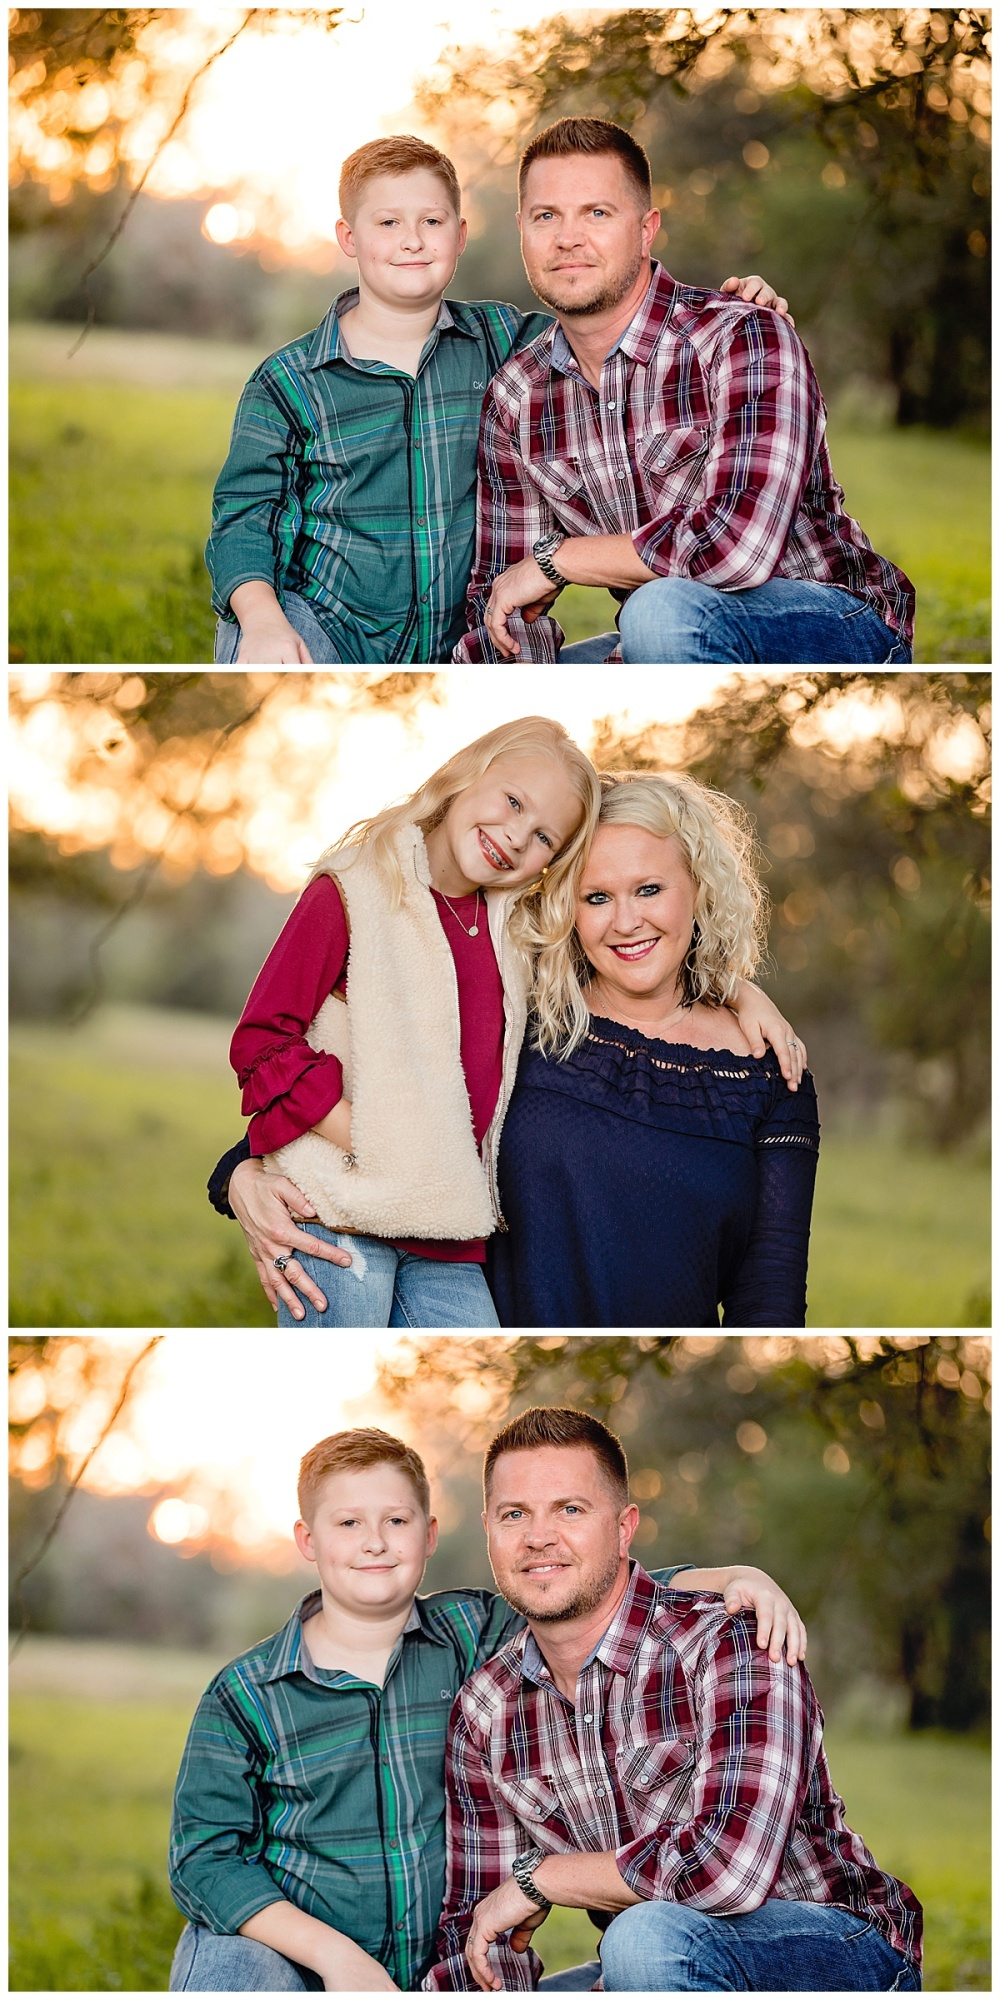 Family-Photographer-LaVernia-Texas-Fall-Sunset-Carly-Barton-Photography_0005.jpg